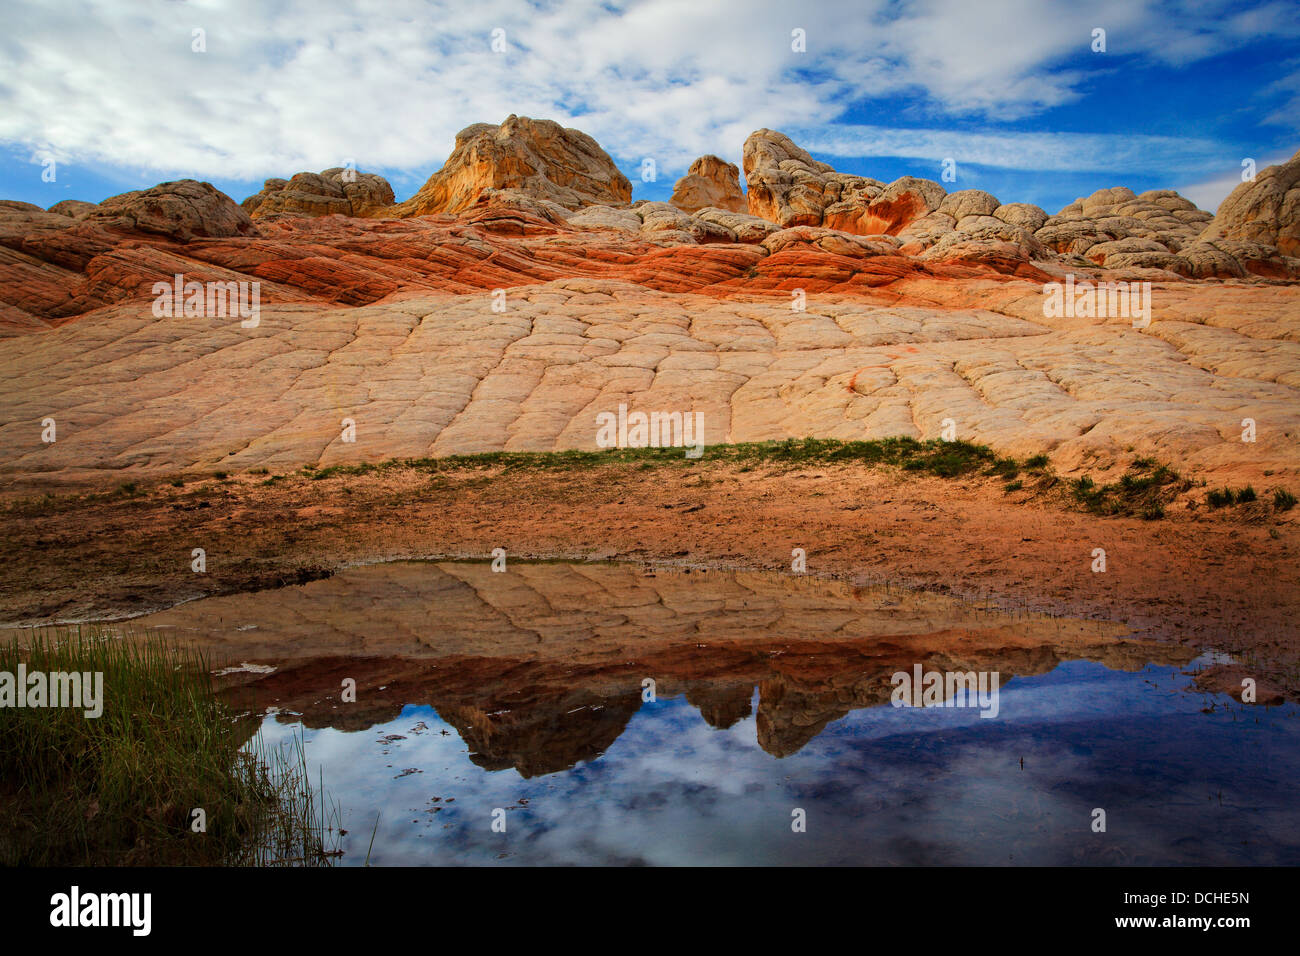 Rock formations dans le Livre blanc de l'unité de poche Vermilion Cliffs National Monument Photo Stock